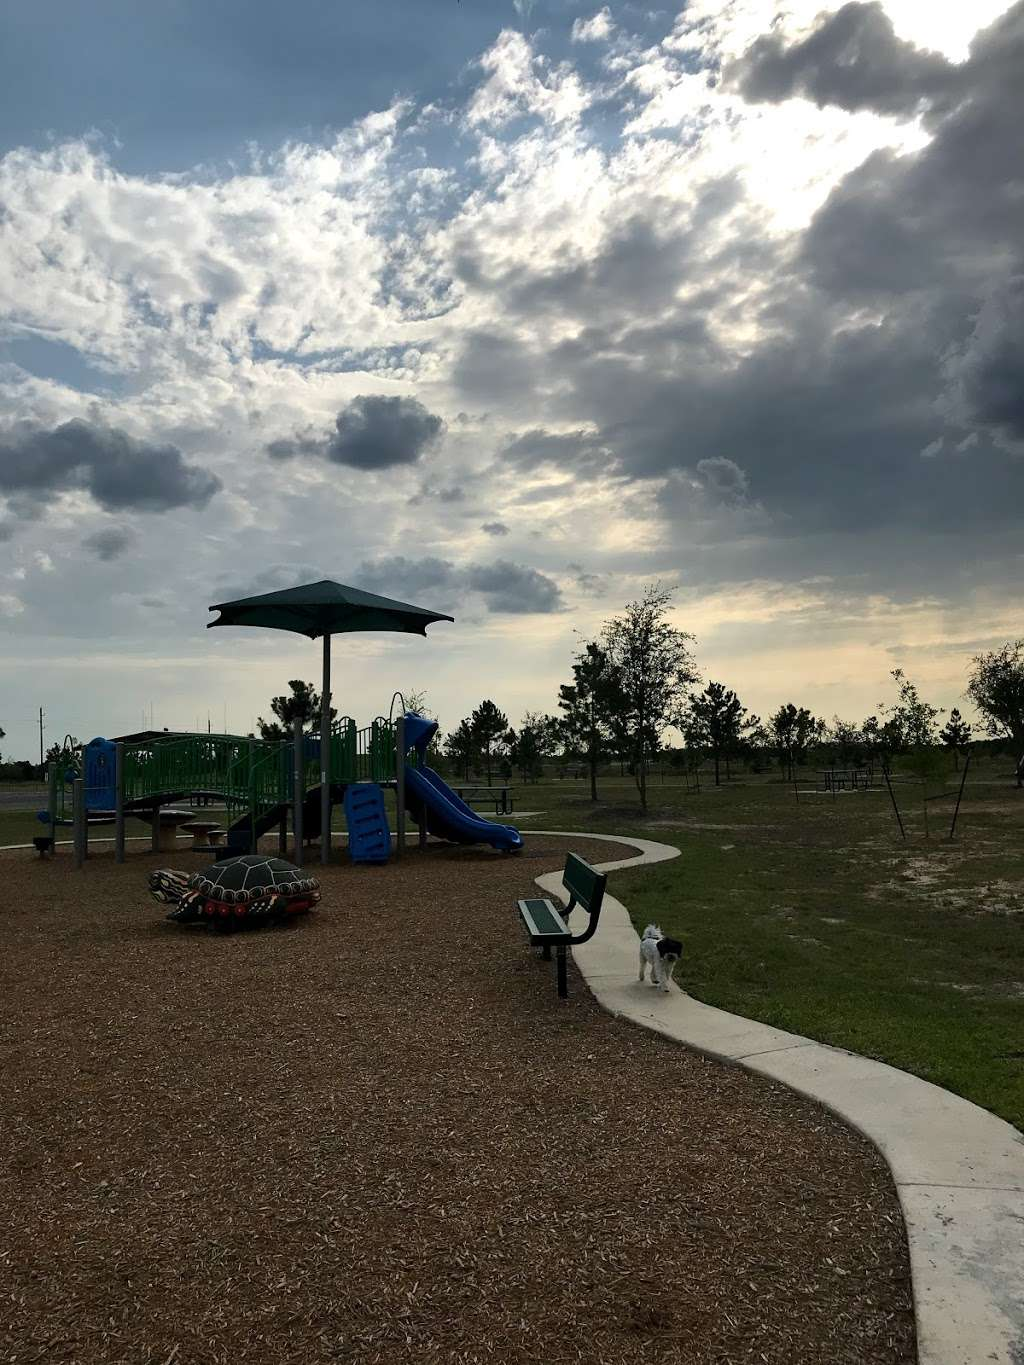 John Paul Landing Park | 24202 West Rd, Cypress, TX 77433, USA